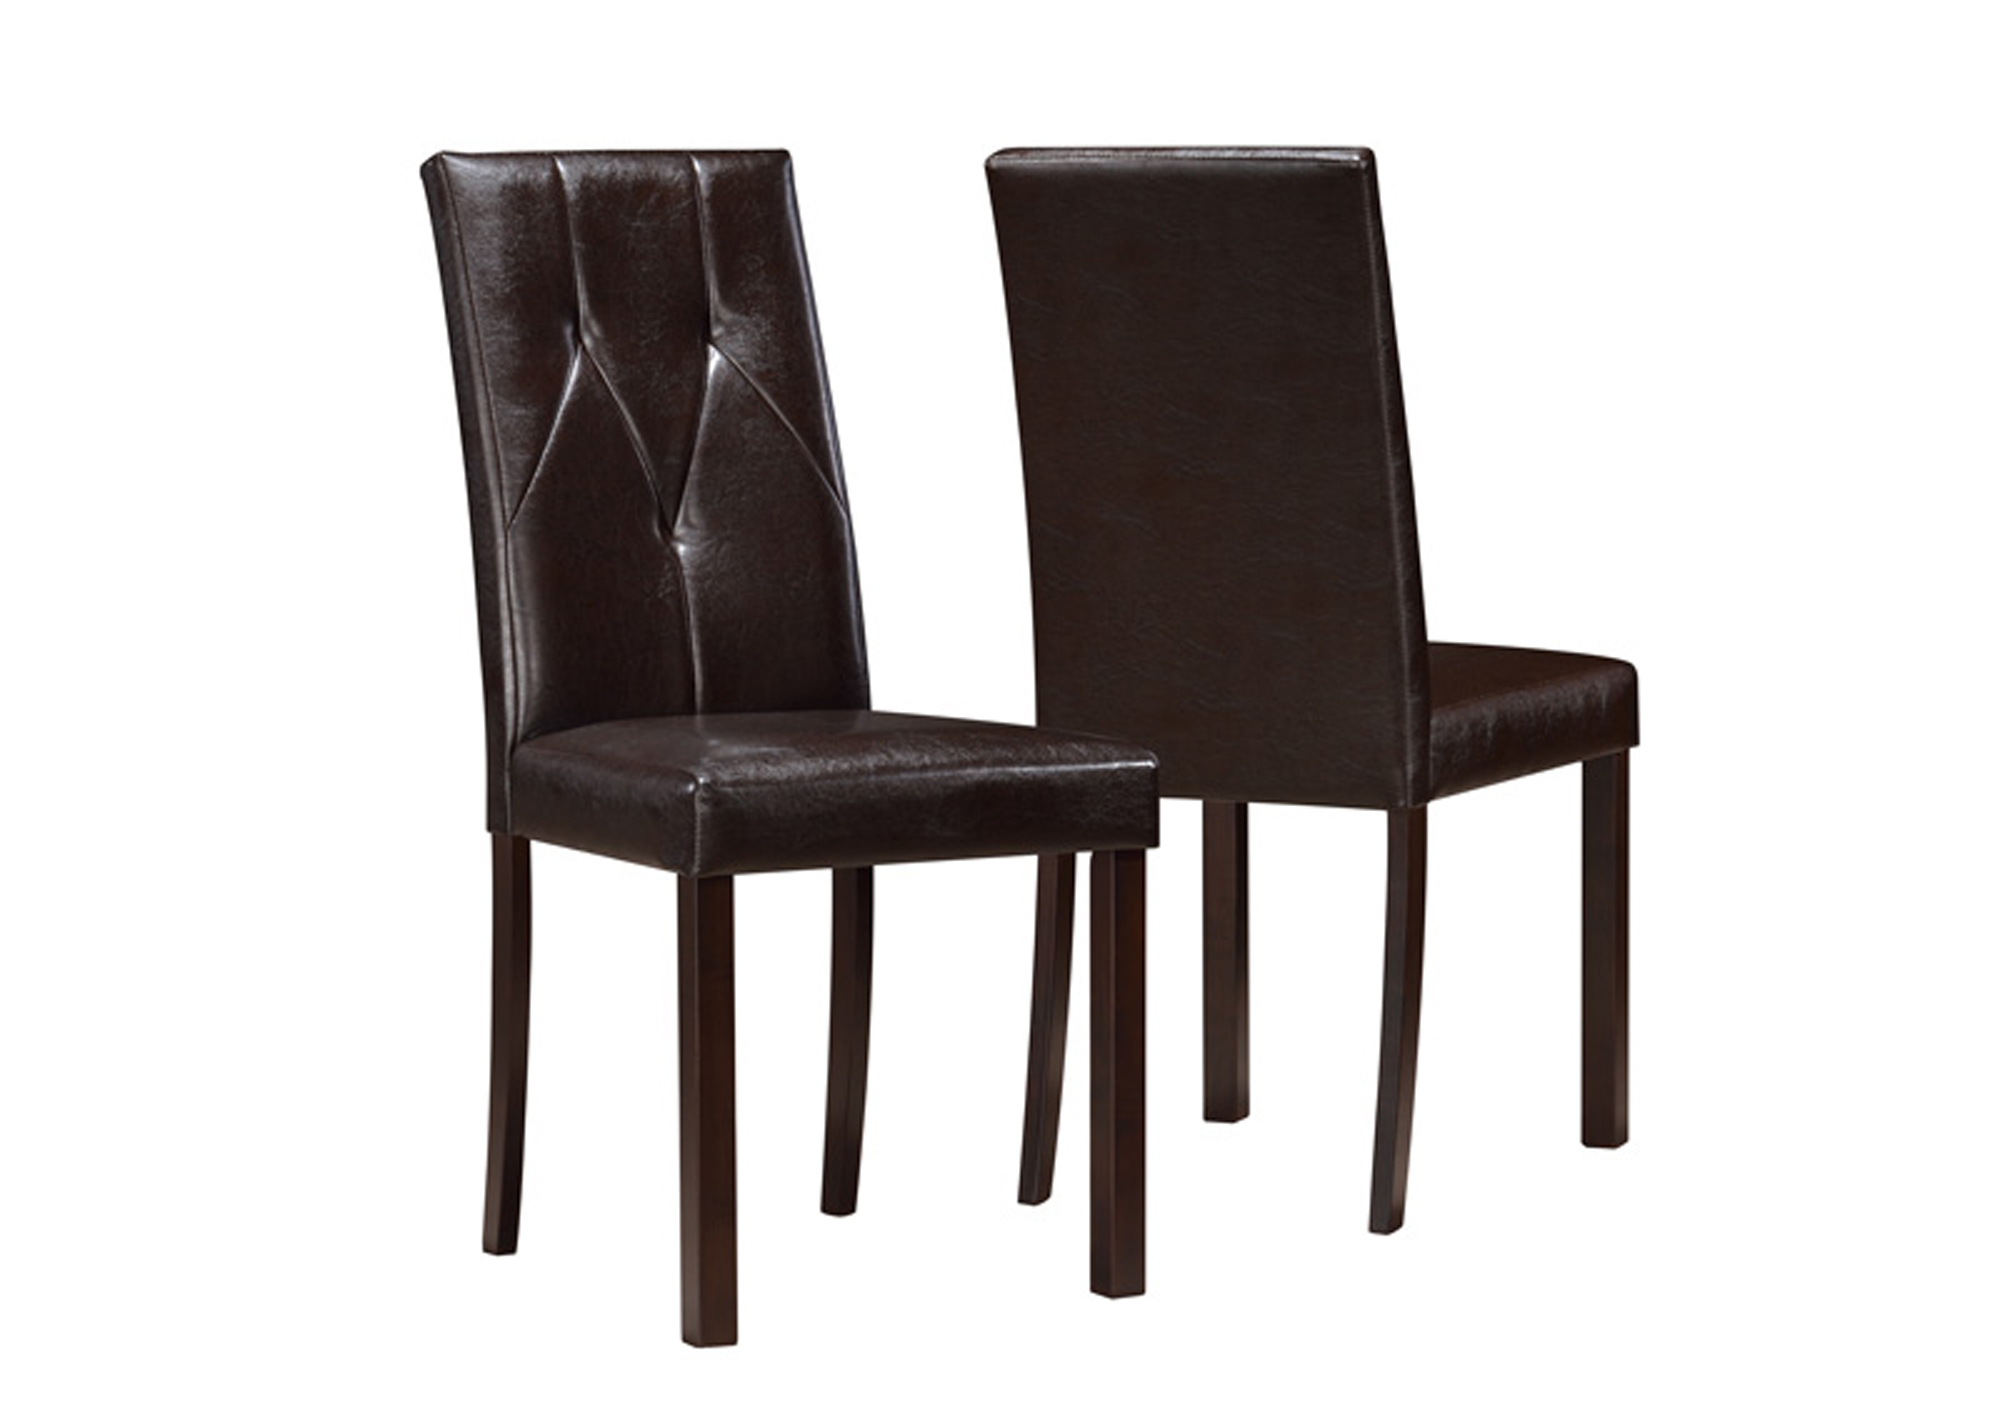 Dining Chair 2pcs 38 H Dark Brown Leather Look